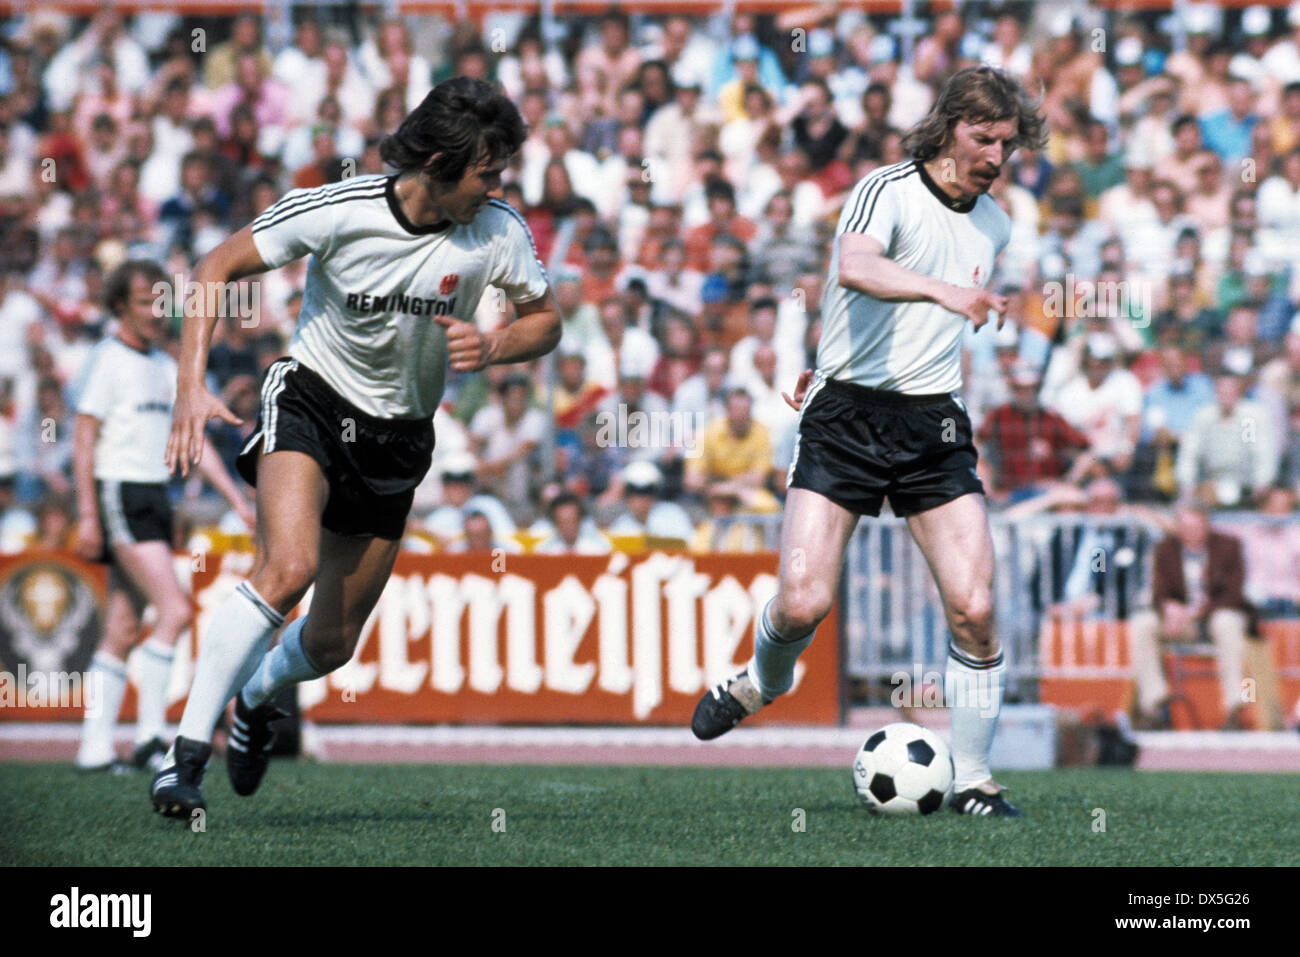 football, DFB Cup, 1974/1975, final, Niedersachsen Stadium in Hanover, Eintracht Frankfurt versus MSV Duisburg 1:0, scene of the match, Klaus Beverungen (Eintracht) left and Juergen Grabowski (Eintracht) - Stock Image